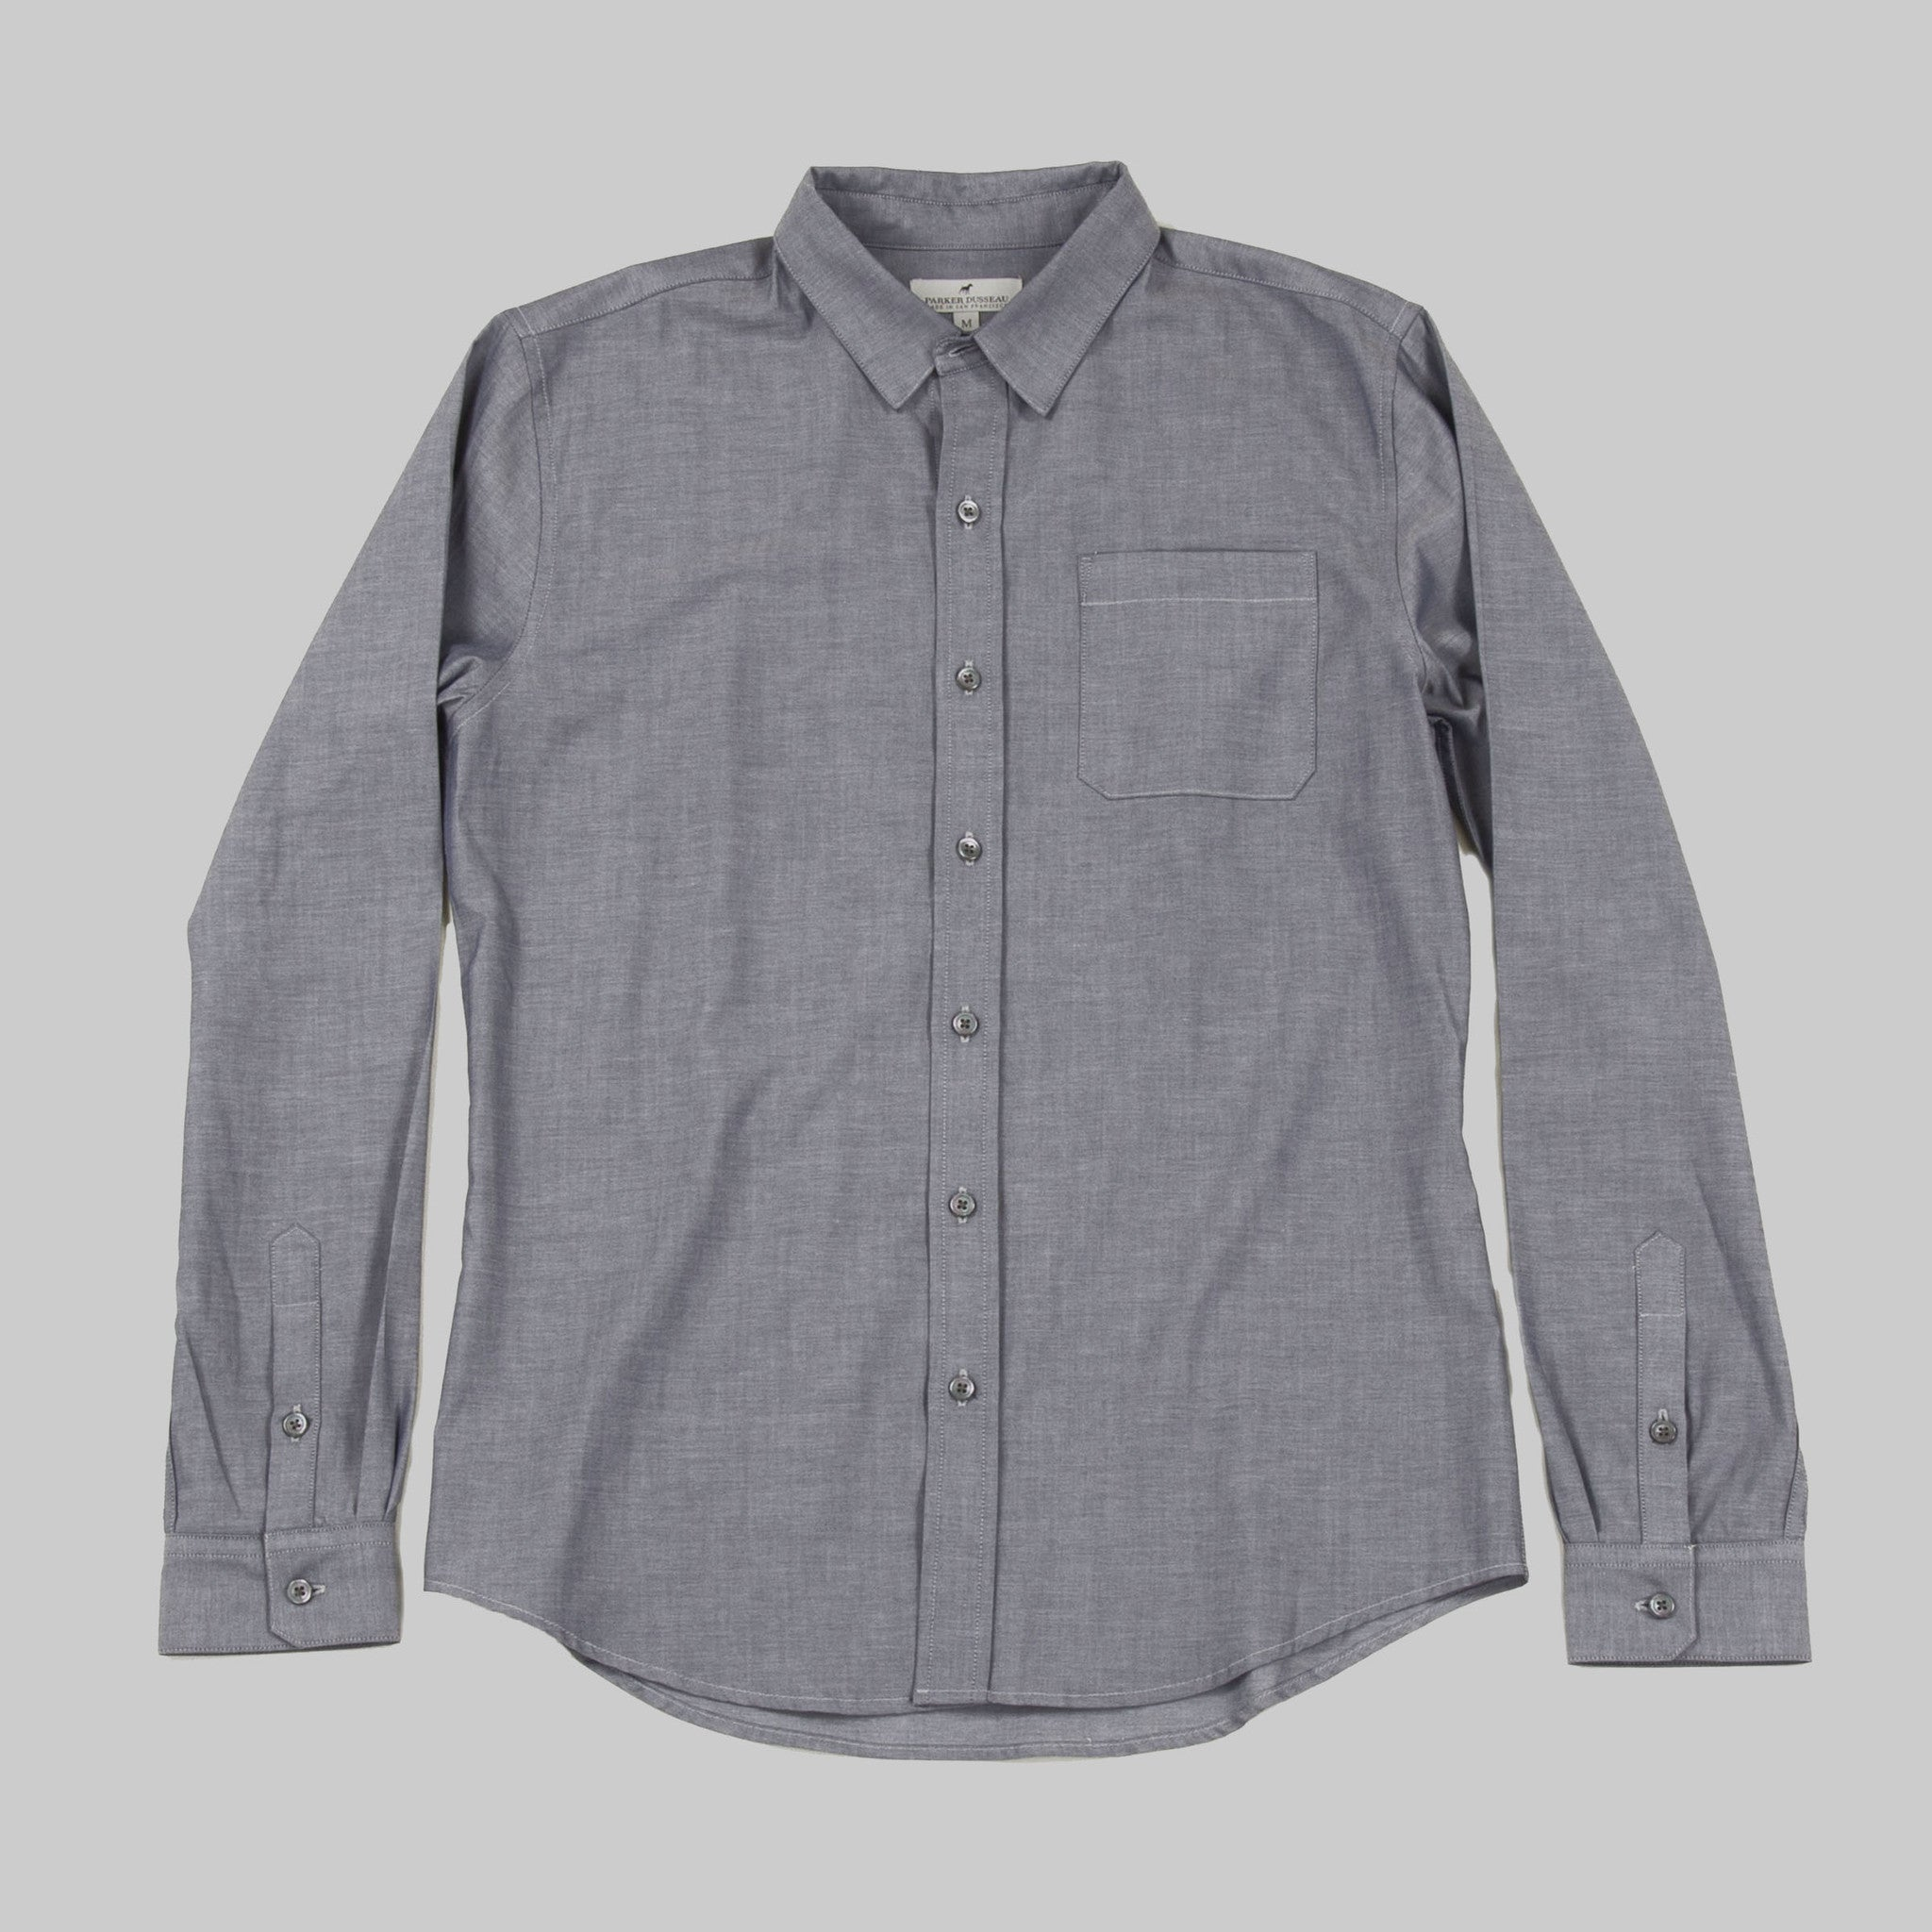 Five Day Wool / Cotton Button Up - Indigo Dress Shirt- Parker Dusseau : Functional Menswear Essentials for the Always Ready Lifestyle. Based in San Francisco, California